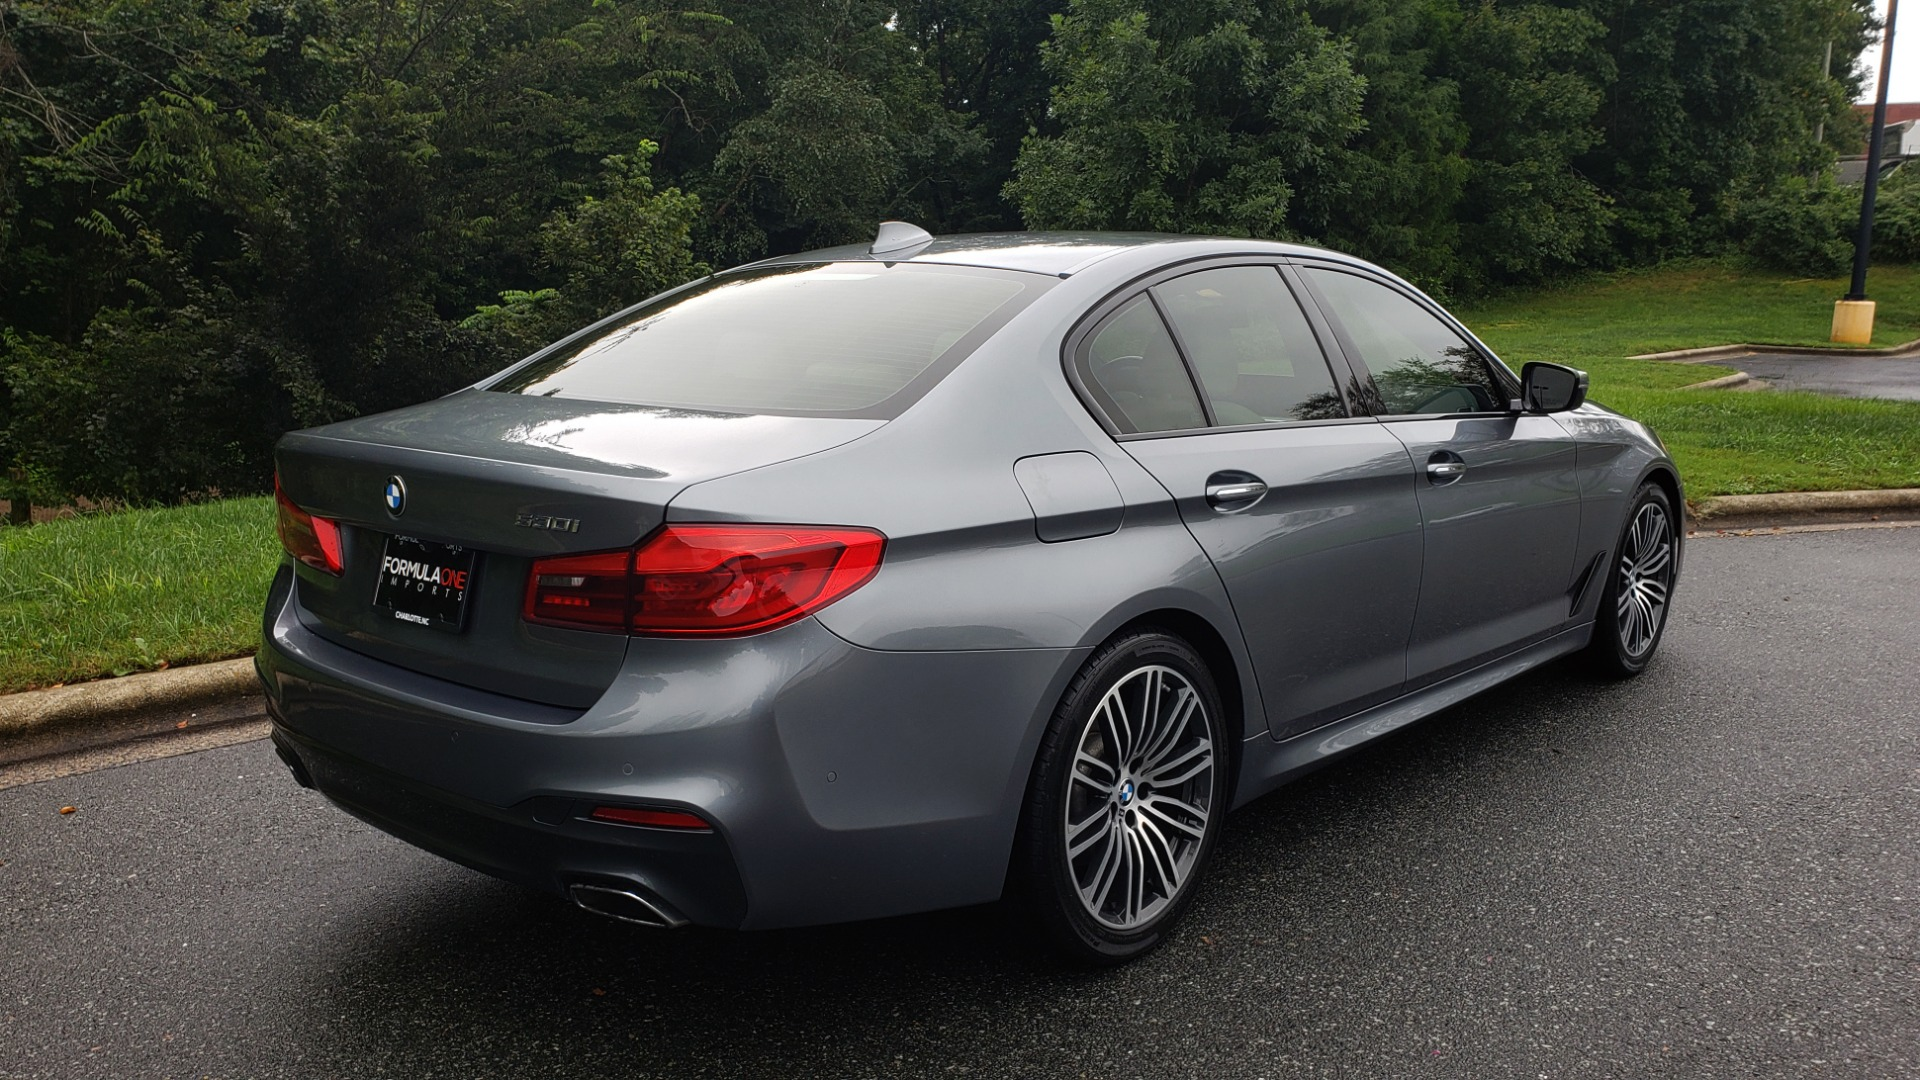 Used 2017 BMW 5 SERIES 530I M-SPORT / PREM PKG / DRVR ASST PLUS / LIGHTING / PREM SND for sale Sold at Formula Imports in Charlotte NC 28227 6